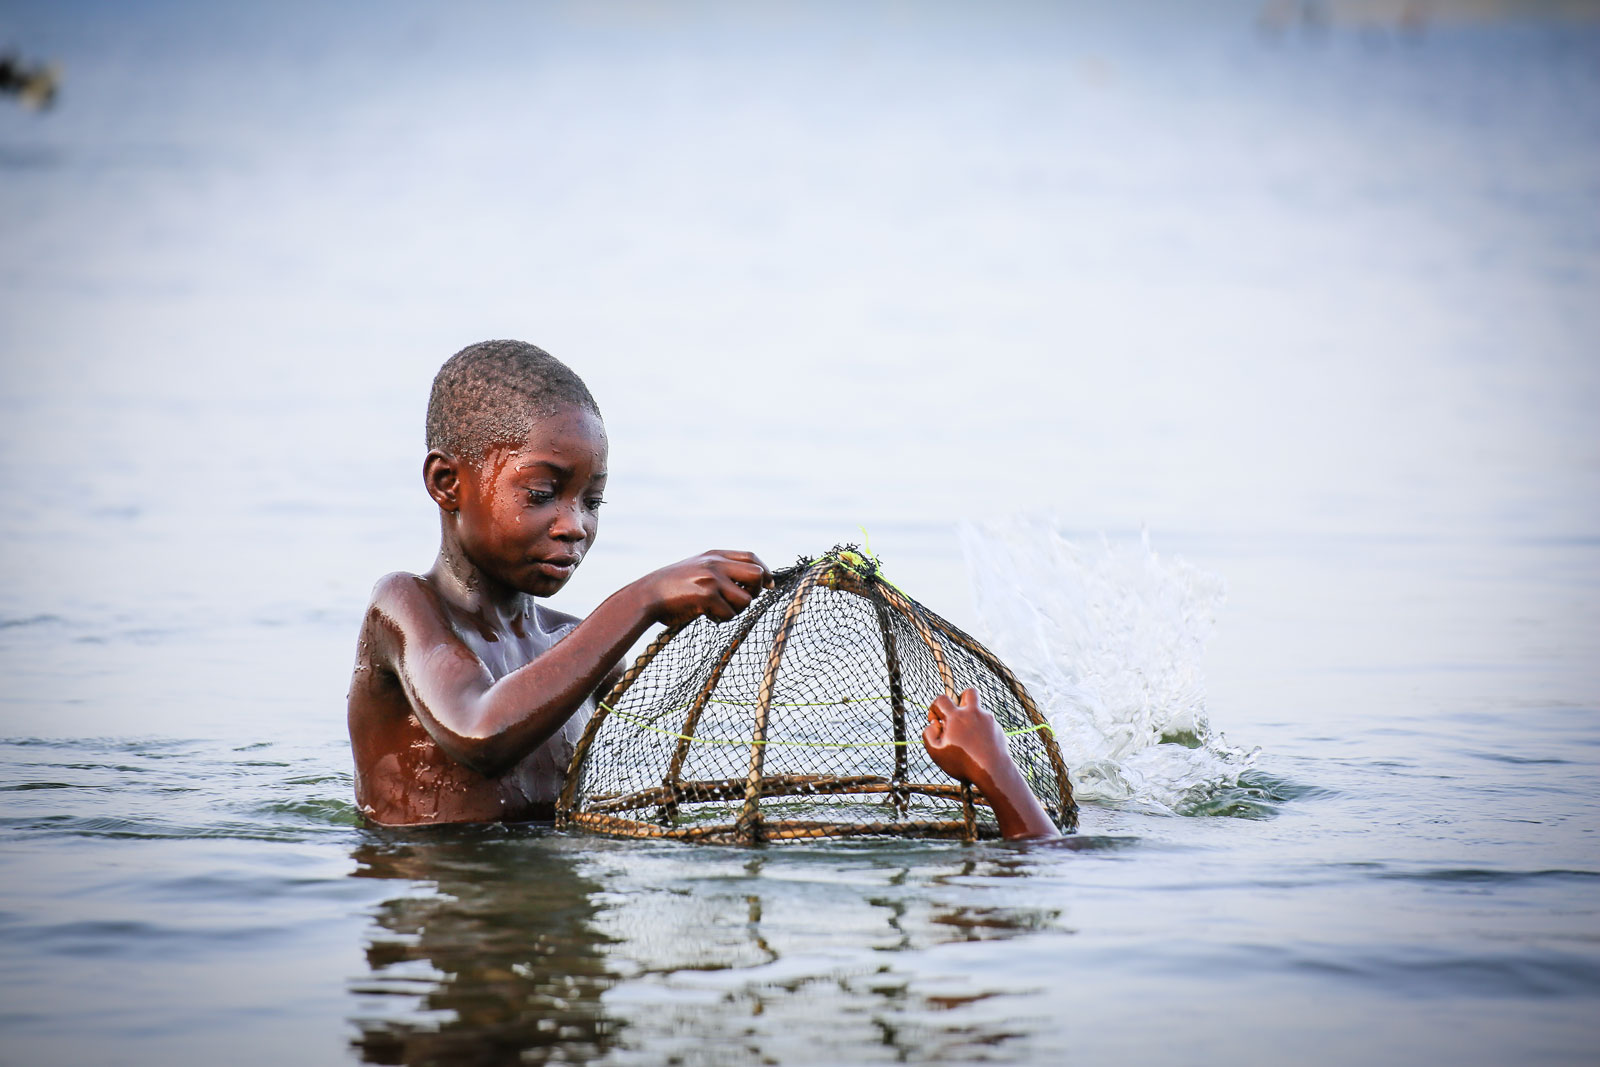 15 Powerful Photos that Capture Child Slavery #9